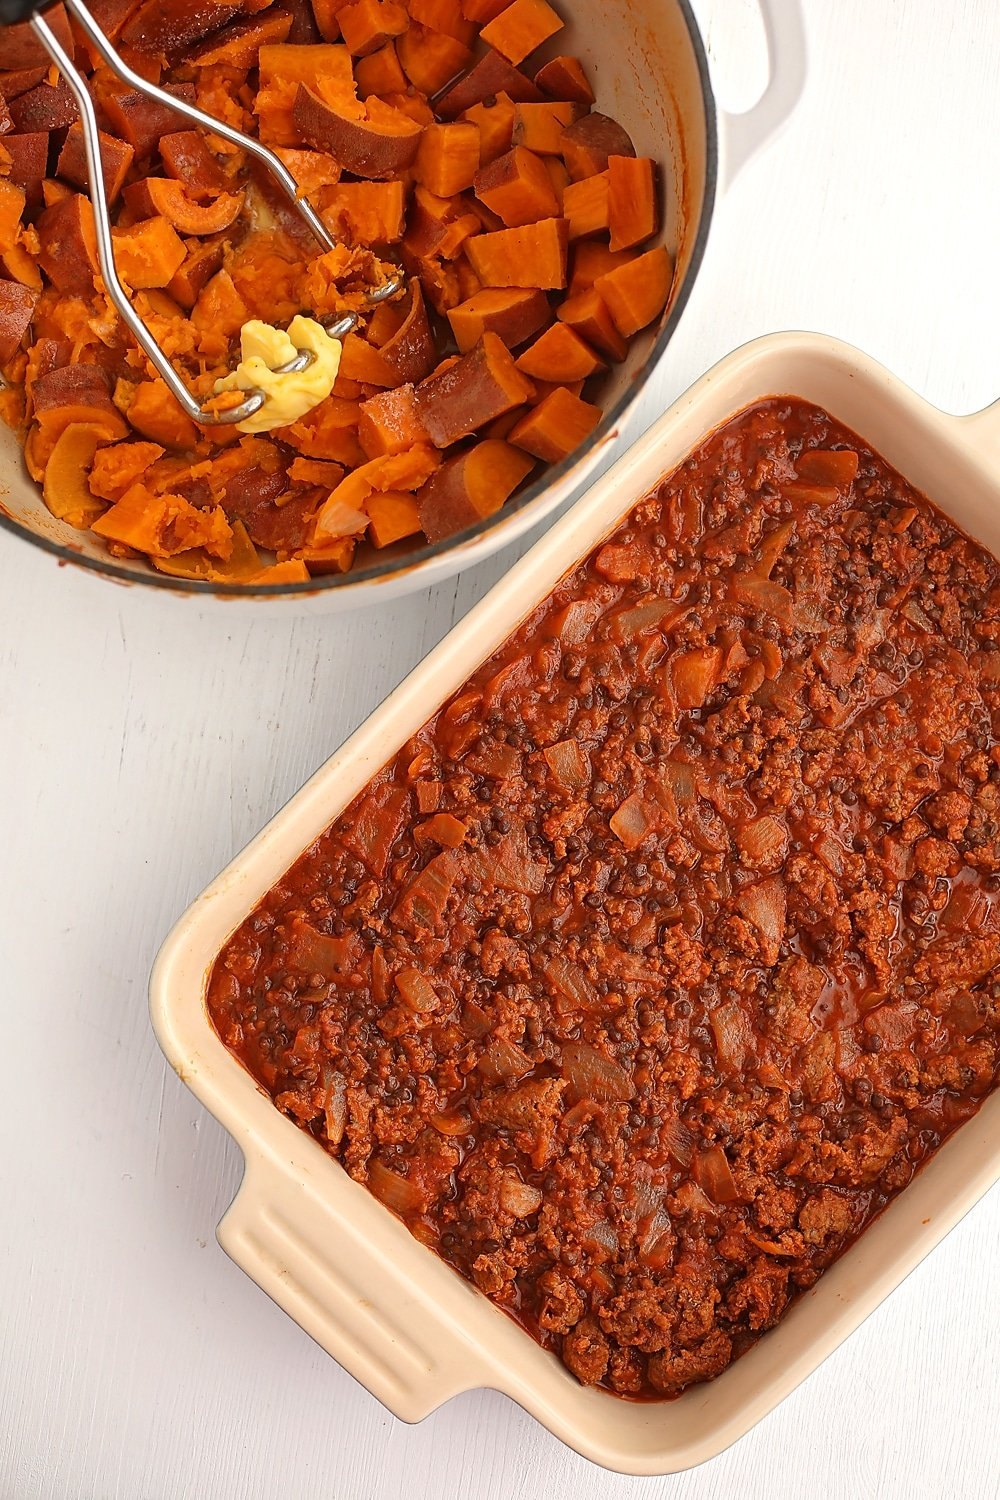 baking dish filled with cooked meat and pot filled with mashed sweet potato